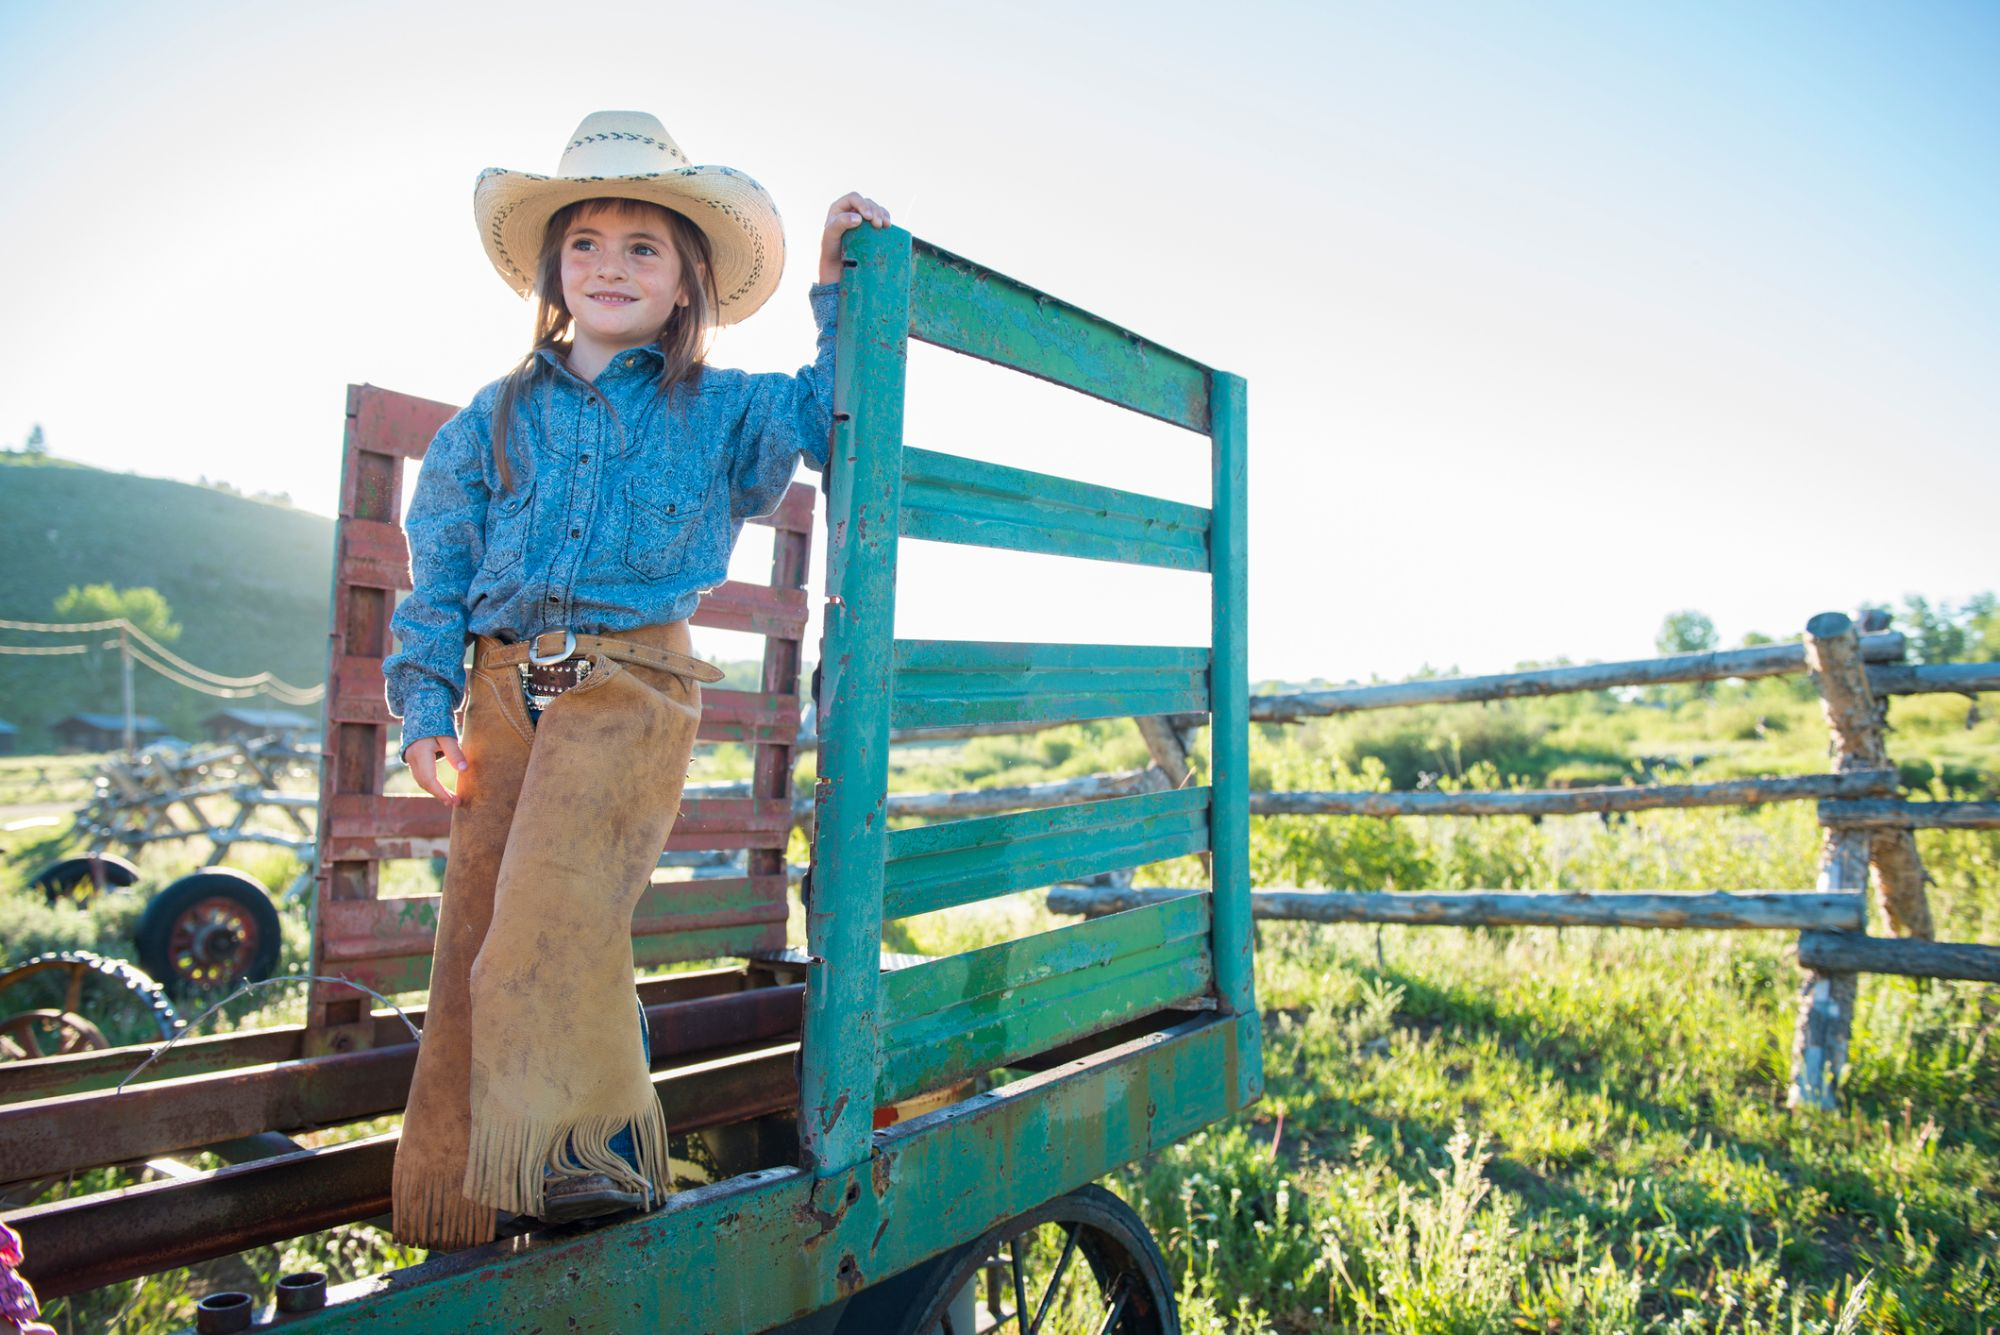 Little girl in a cowgirl costume